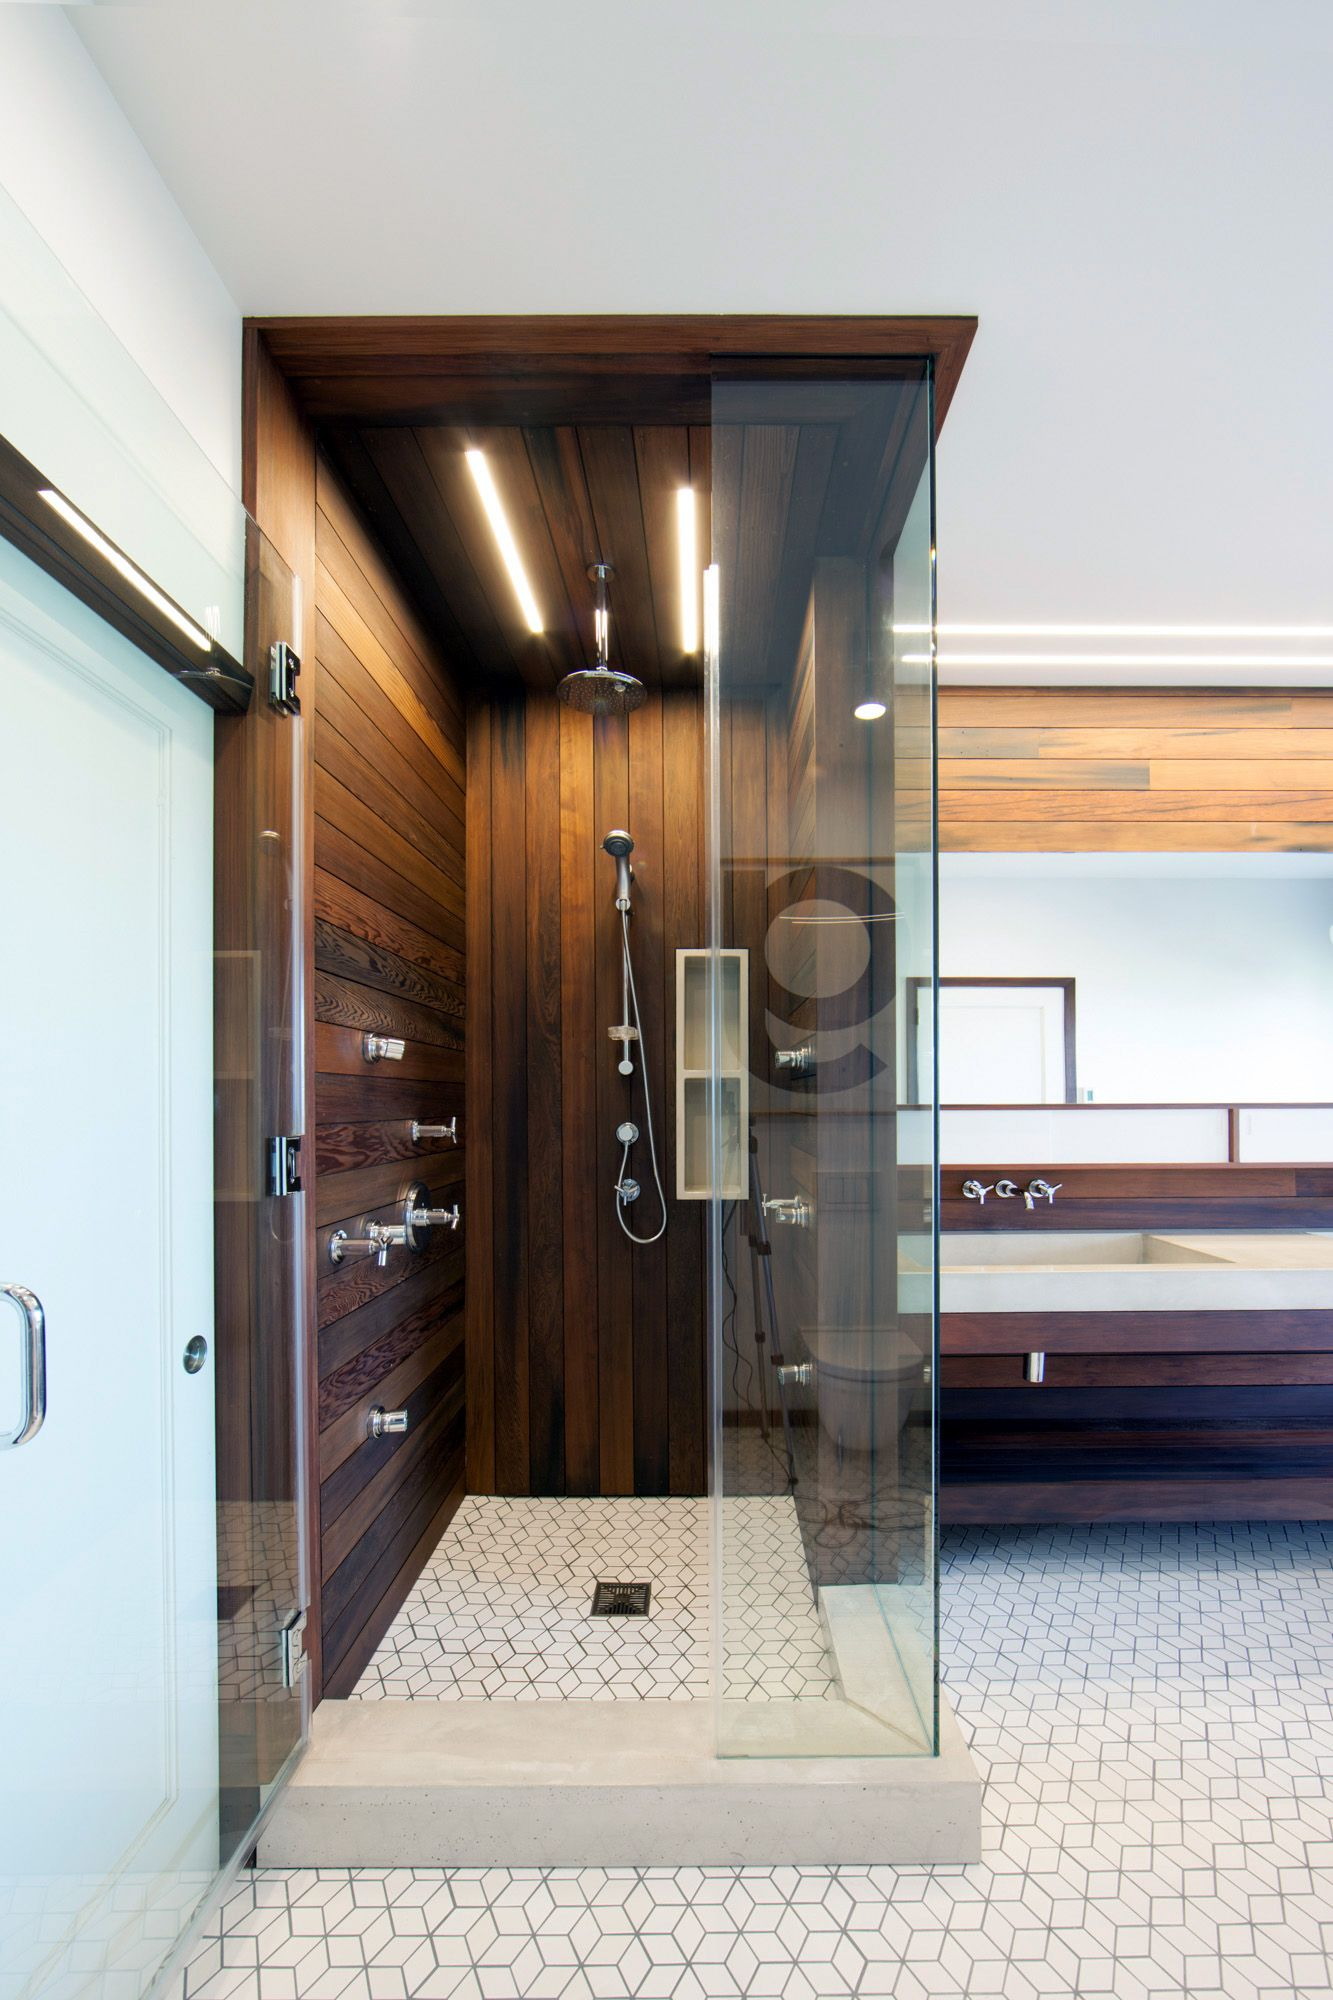 San Francisco Bathroom Design U0026 Build: Knife 12 U0026 Saw / Arcson Design |  Photographer